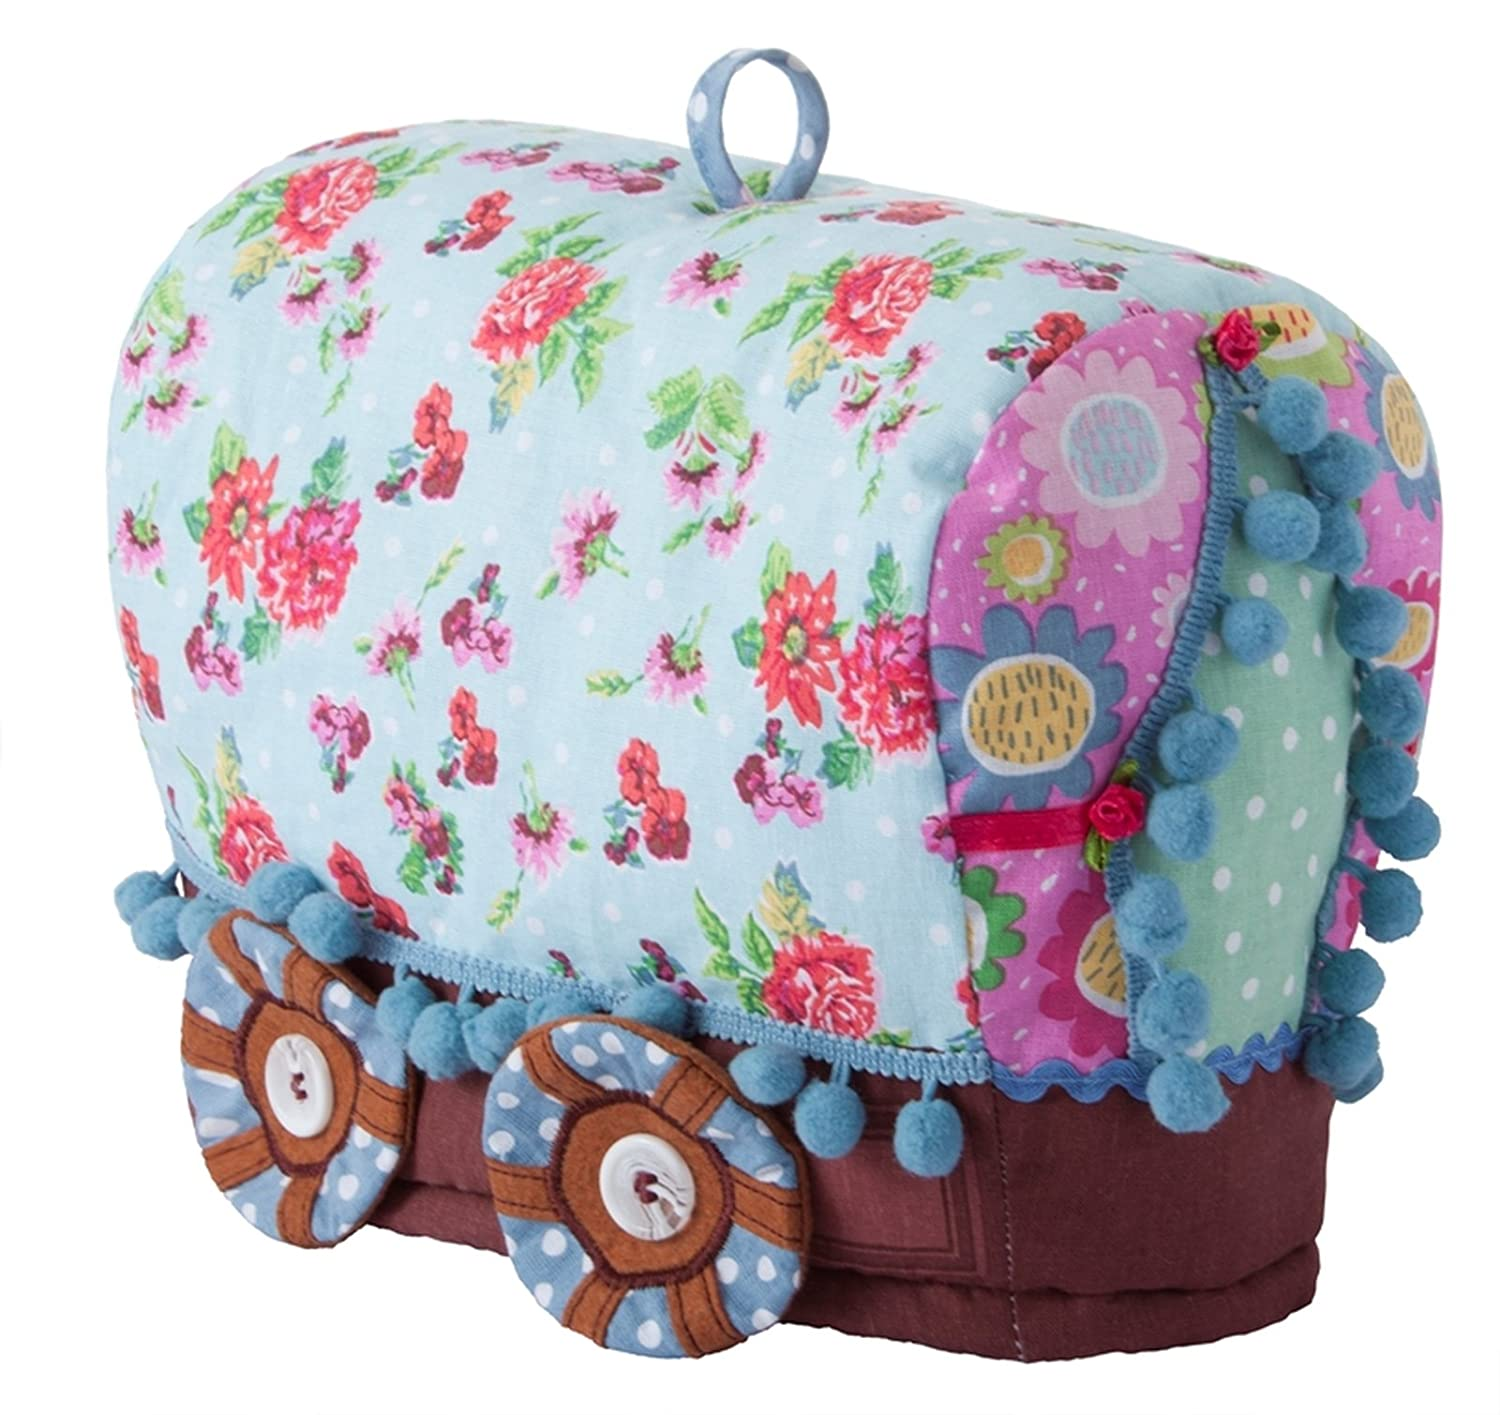 Gypsy Caravan Shaped Tea Cosy Ulster Weavers 7GYP04